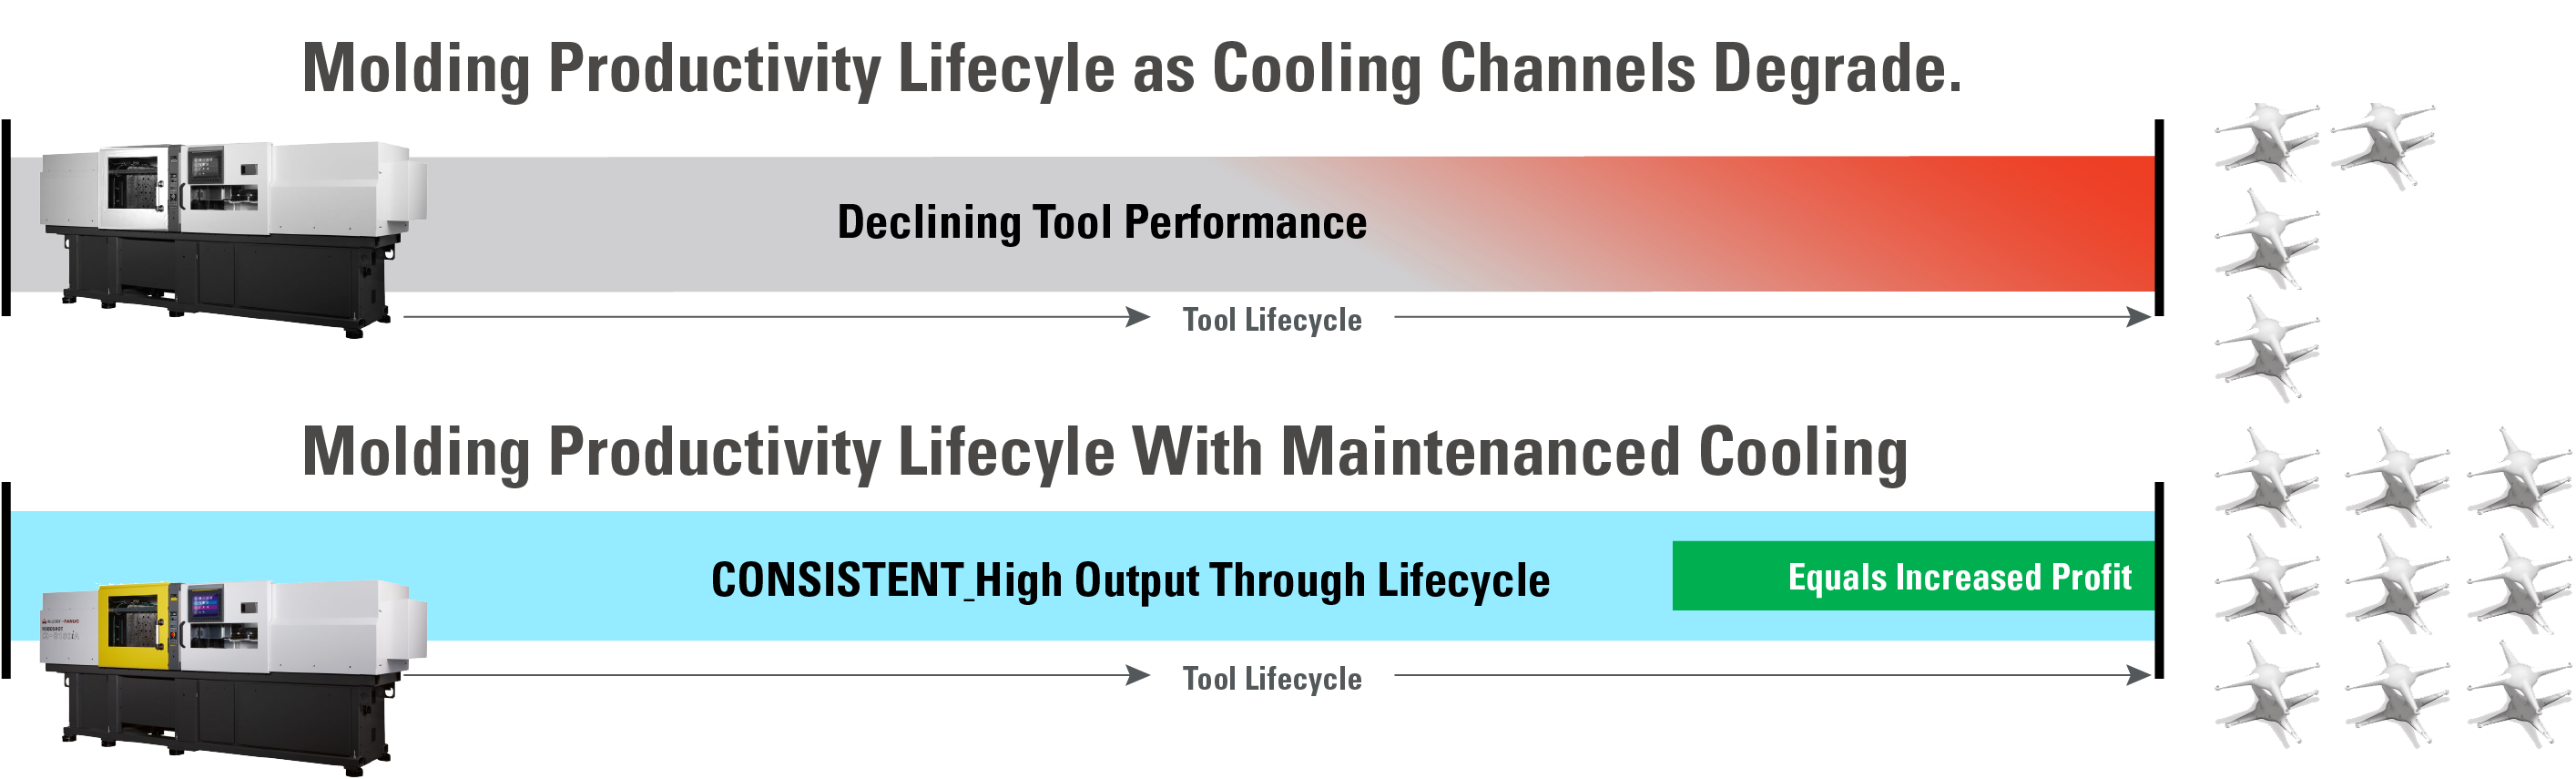 TRUCOOL-tool lifecycle